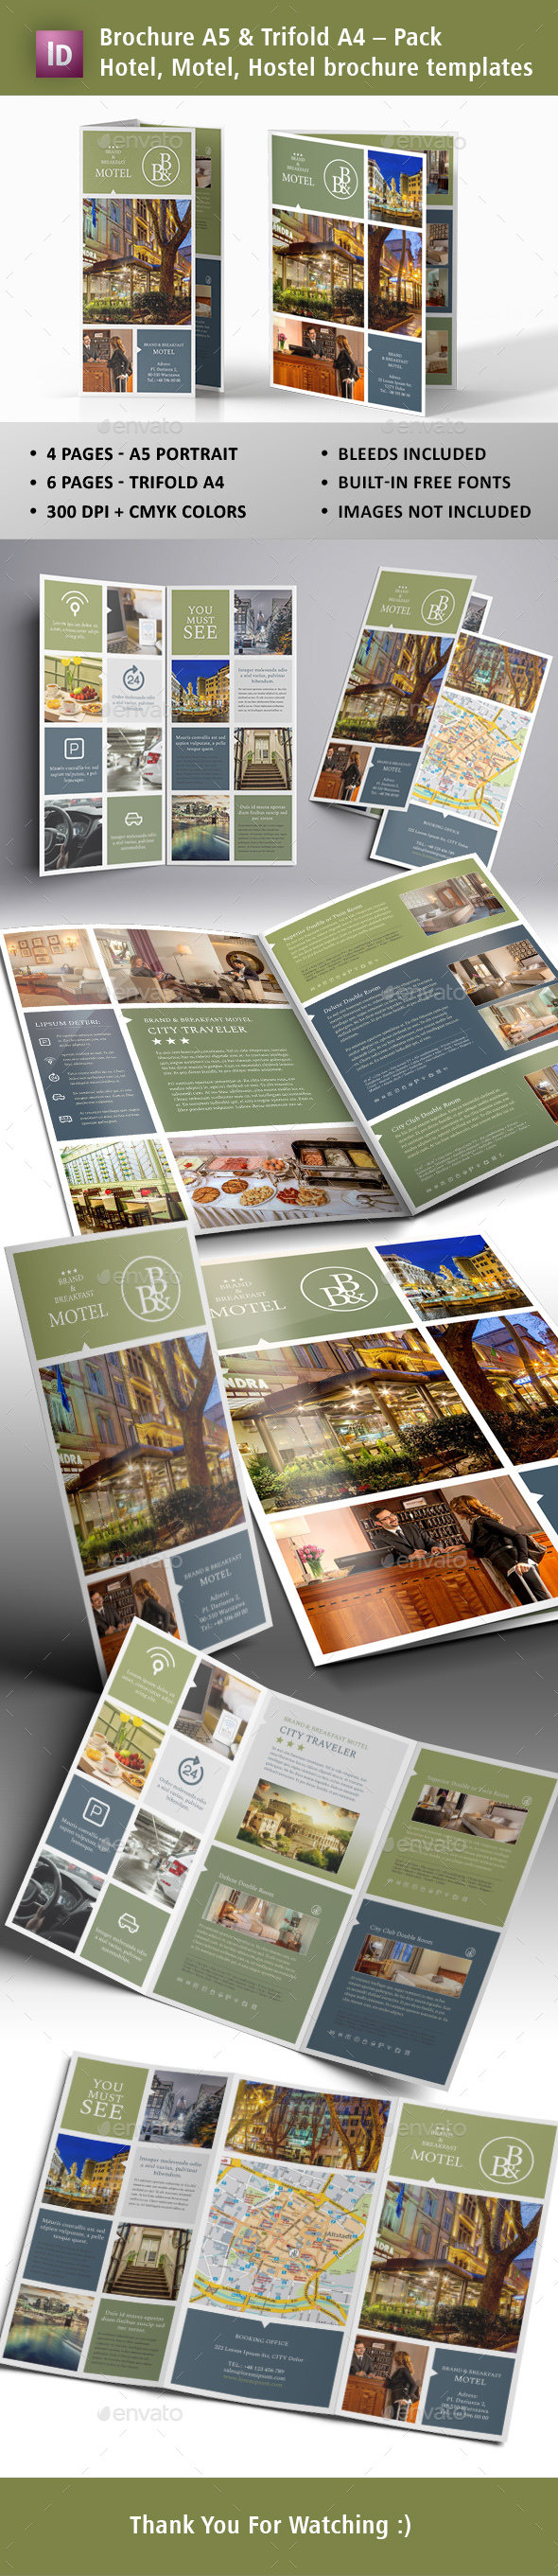 GraphicRiver Motel Hostel Hotel Brochures Templates 20682595